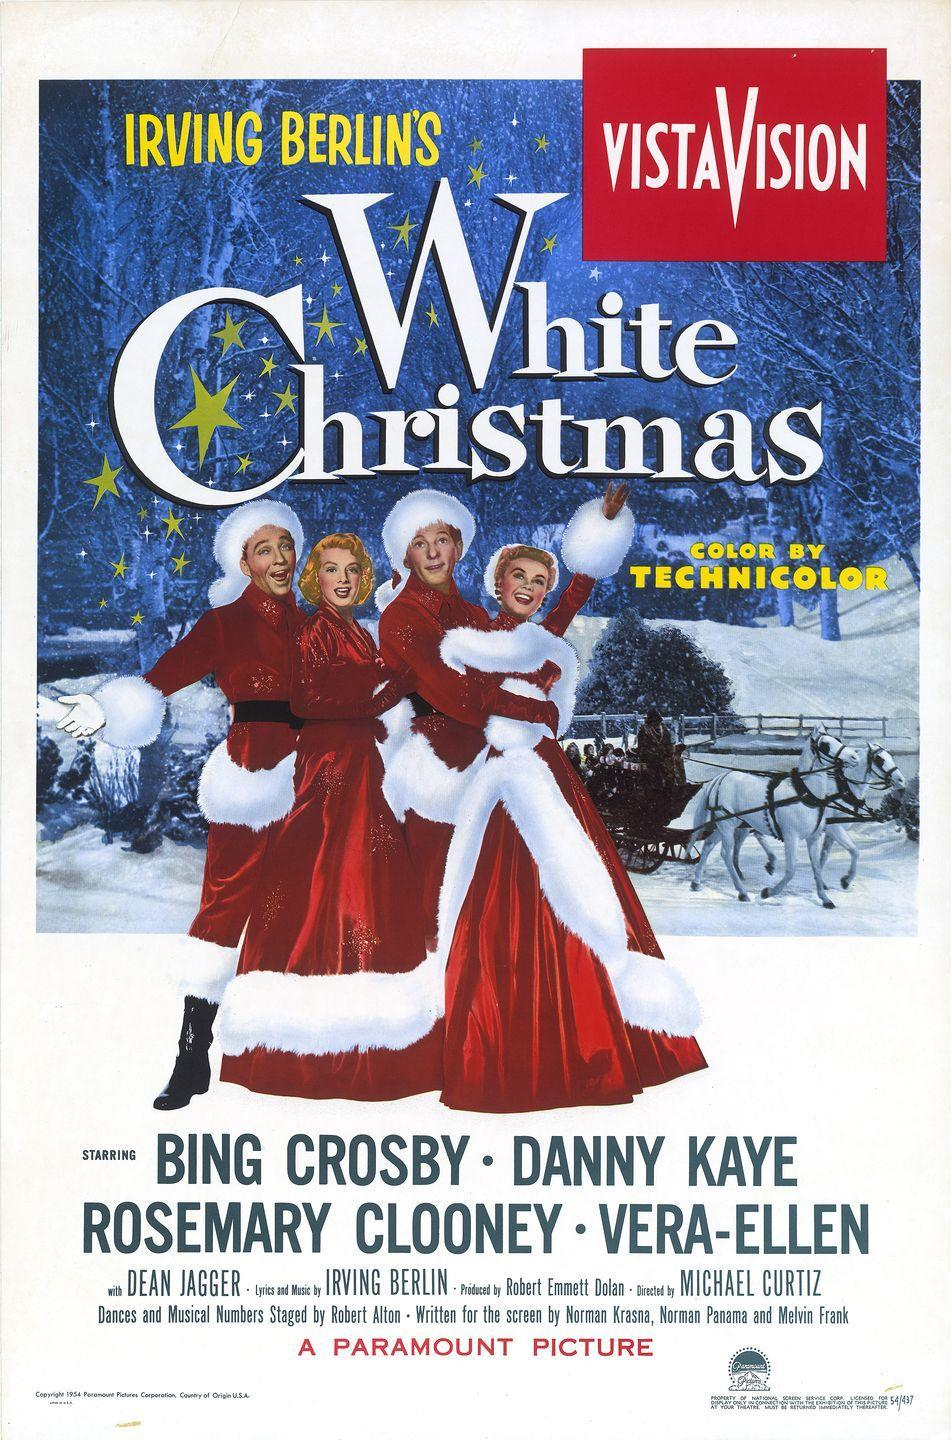 """<p>What's a Christmas movie marathon without this 1950s classic? Something out of the Grinch's lair, that's what. The heartwarming film follows two friends and former soldiers who decide to help their former Army general's struggling inn drum up Christmas business by putting on a big show. The cast is incredible (Bing Crosby, Rosemary Clooney!), and the dance numbers are *chef's kiss*.</p><p><a class=""""link rapid-noclick-resp"""" href=""""https://www.netflix.com/watch/60003082"""" rel=""""nofollow noopener"""" target=""""_blank"""" data-ylk=""""slk:Watch Now"""">Watch Now</a></p>"""